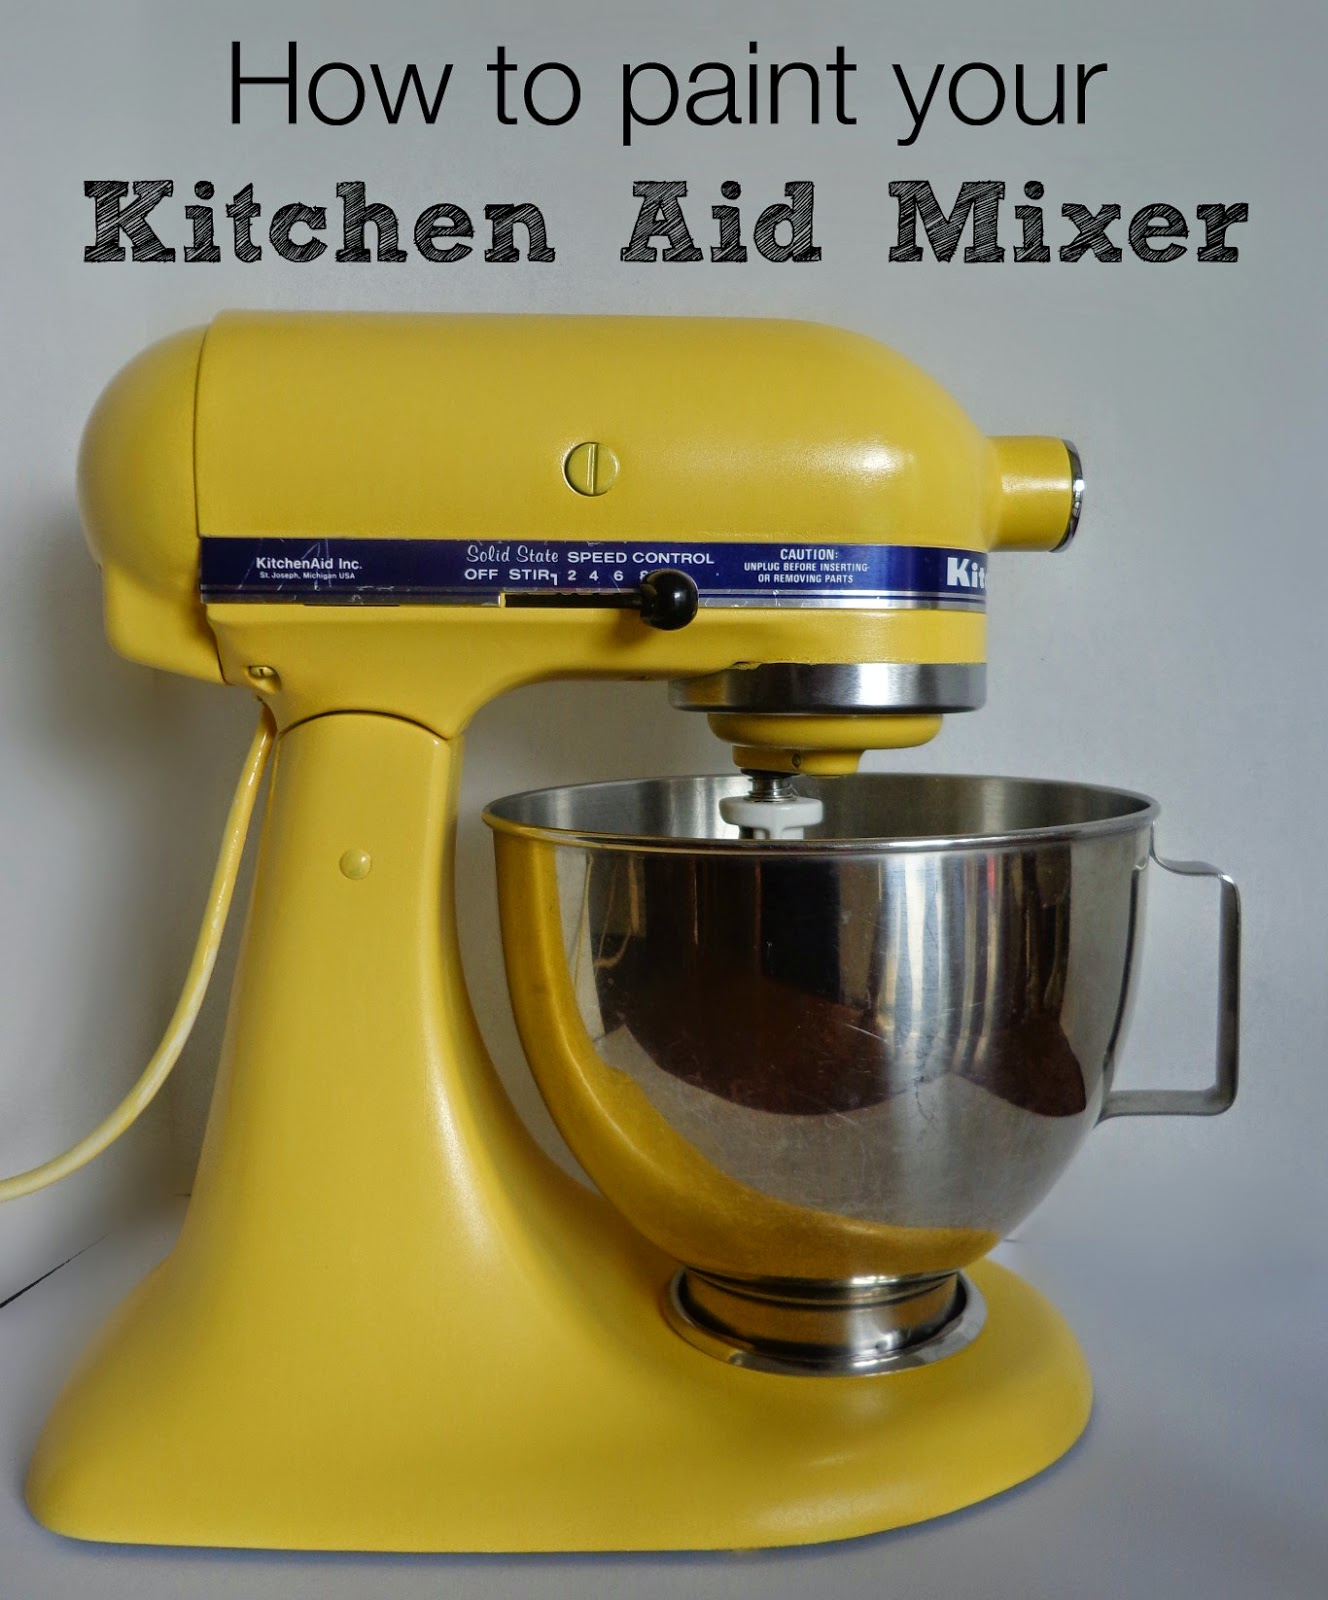 http://www.hackedbykate.com/2014/06/how-to-paint-your-kitchen-aid-mixer.html